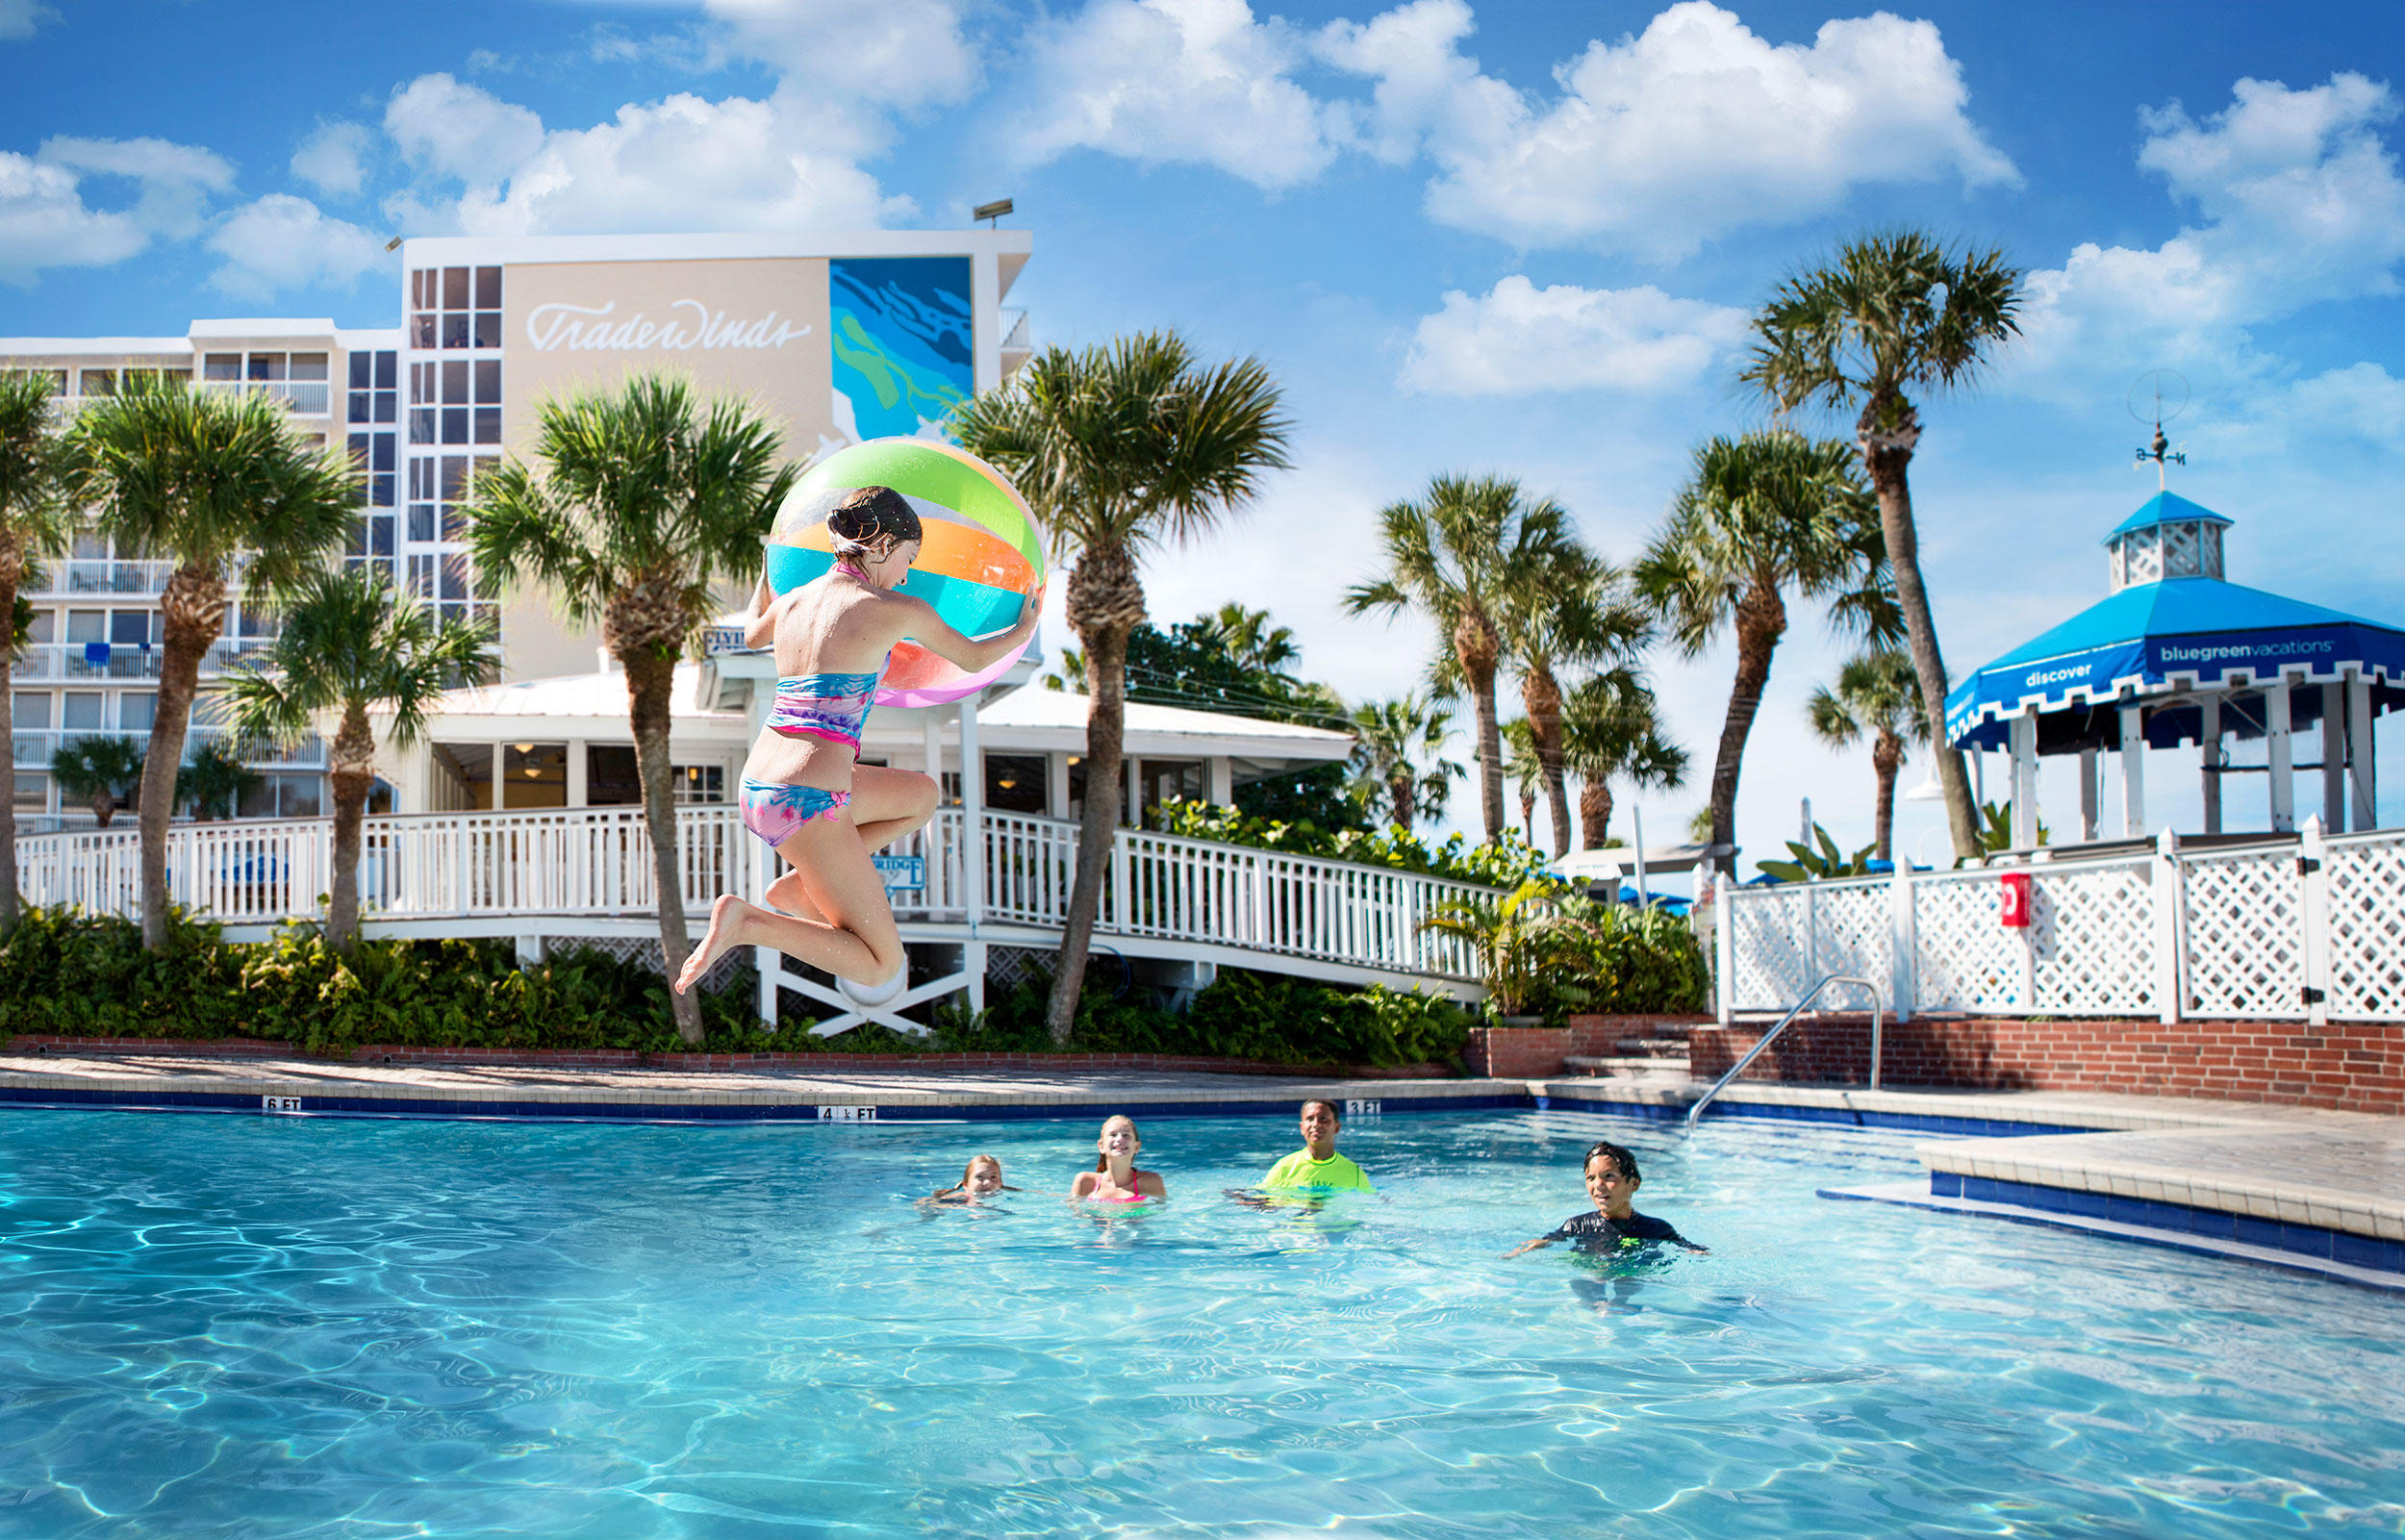 Our kid-friendly, beachfront pool features dive-in movies and poolside invasions that includes competitions and prizes.